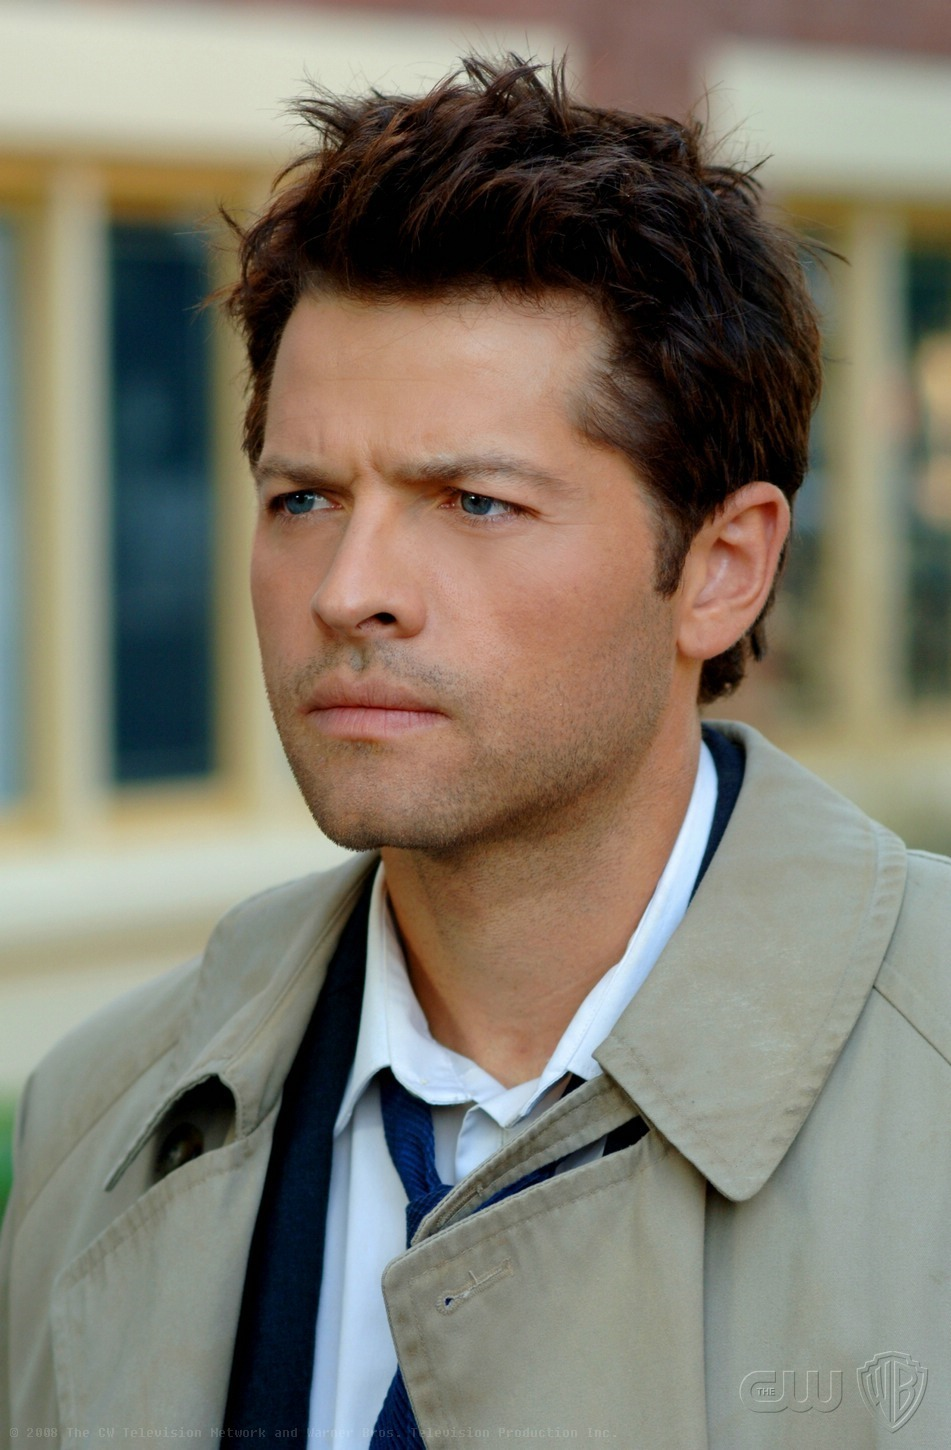 http://static.tumblr.com/cc89223879581c7cdc4f654049efde47/mxrcauo/uuHmy58jq/tumblr_static_promo-castiel-4x03-angels-of-supernatural-9370710-951-1450.jpg